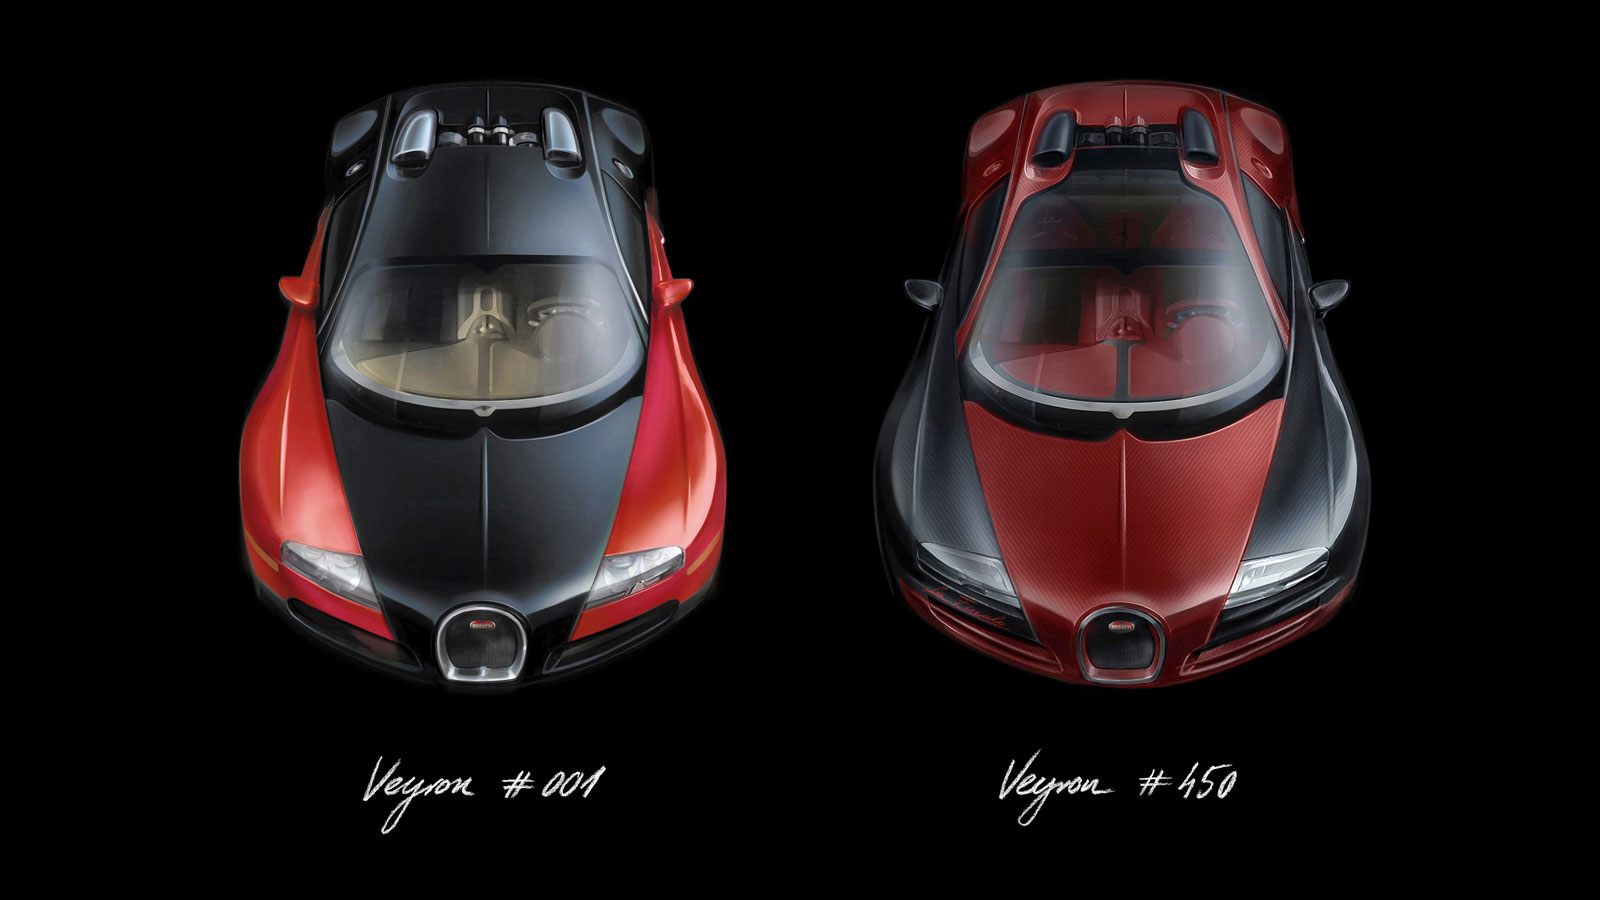 Bugatti Veyron The Number 1 And 450 Design Sketch Car Body Design